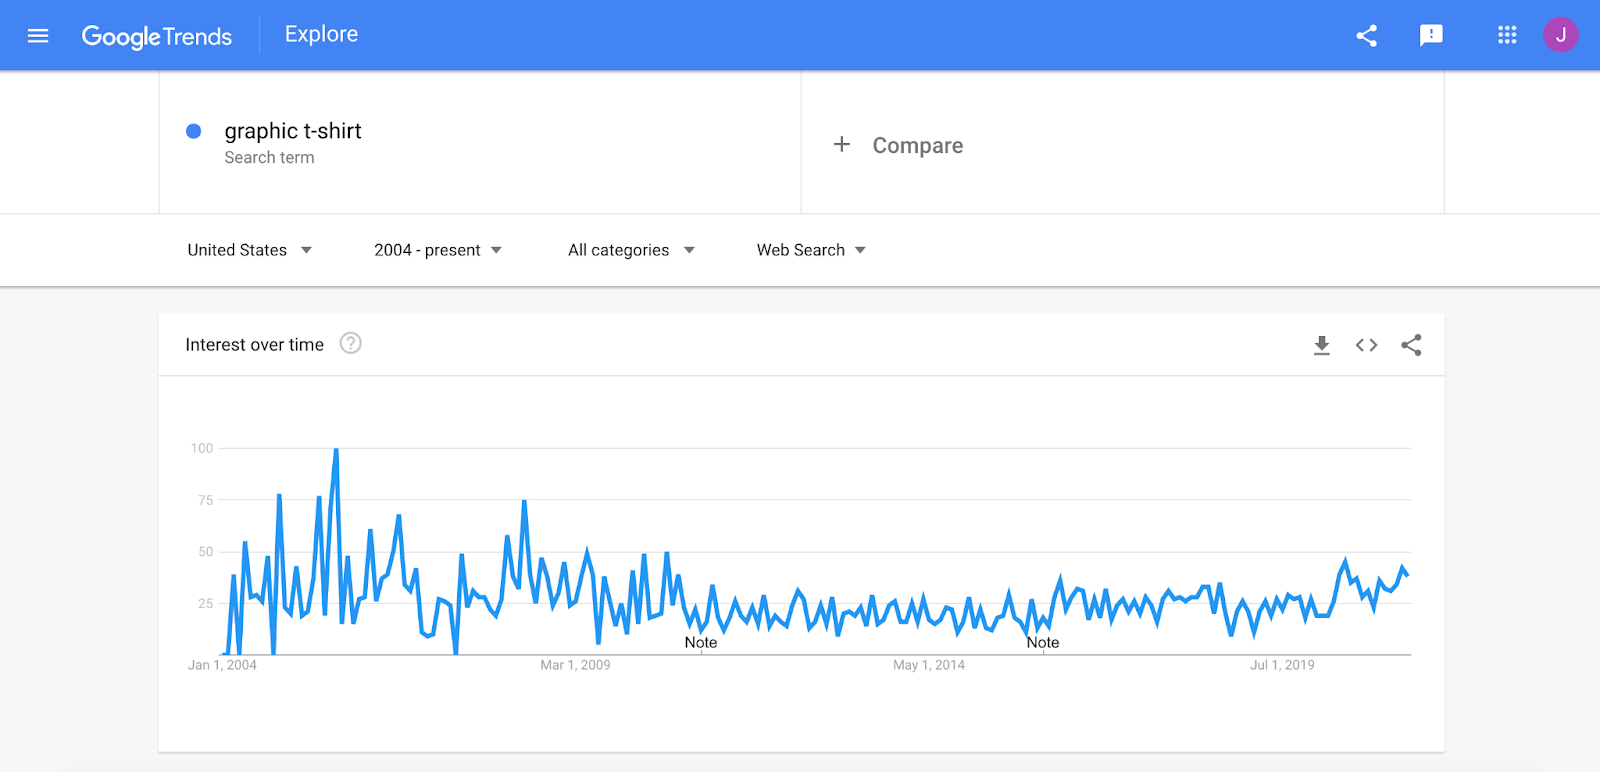 Google Search interest toward graphic t-shirts from May 2004 to present